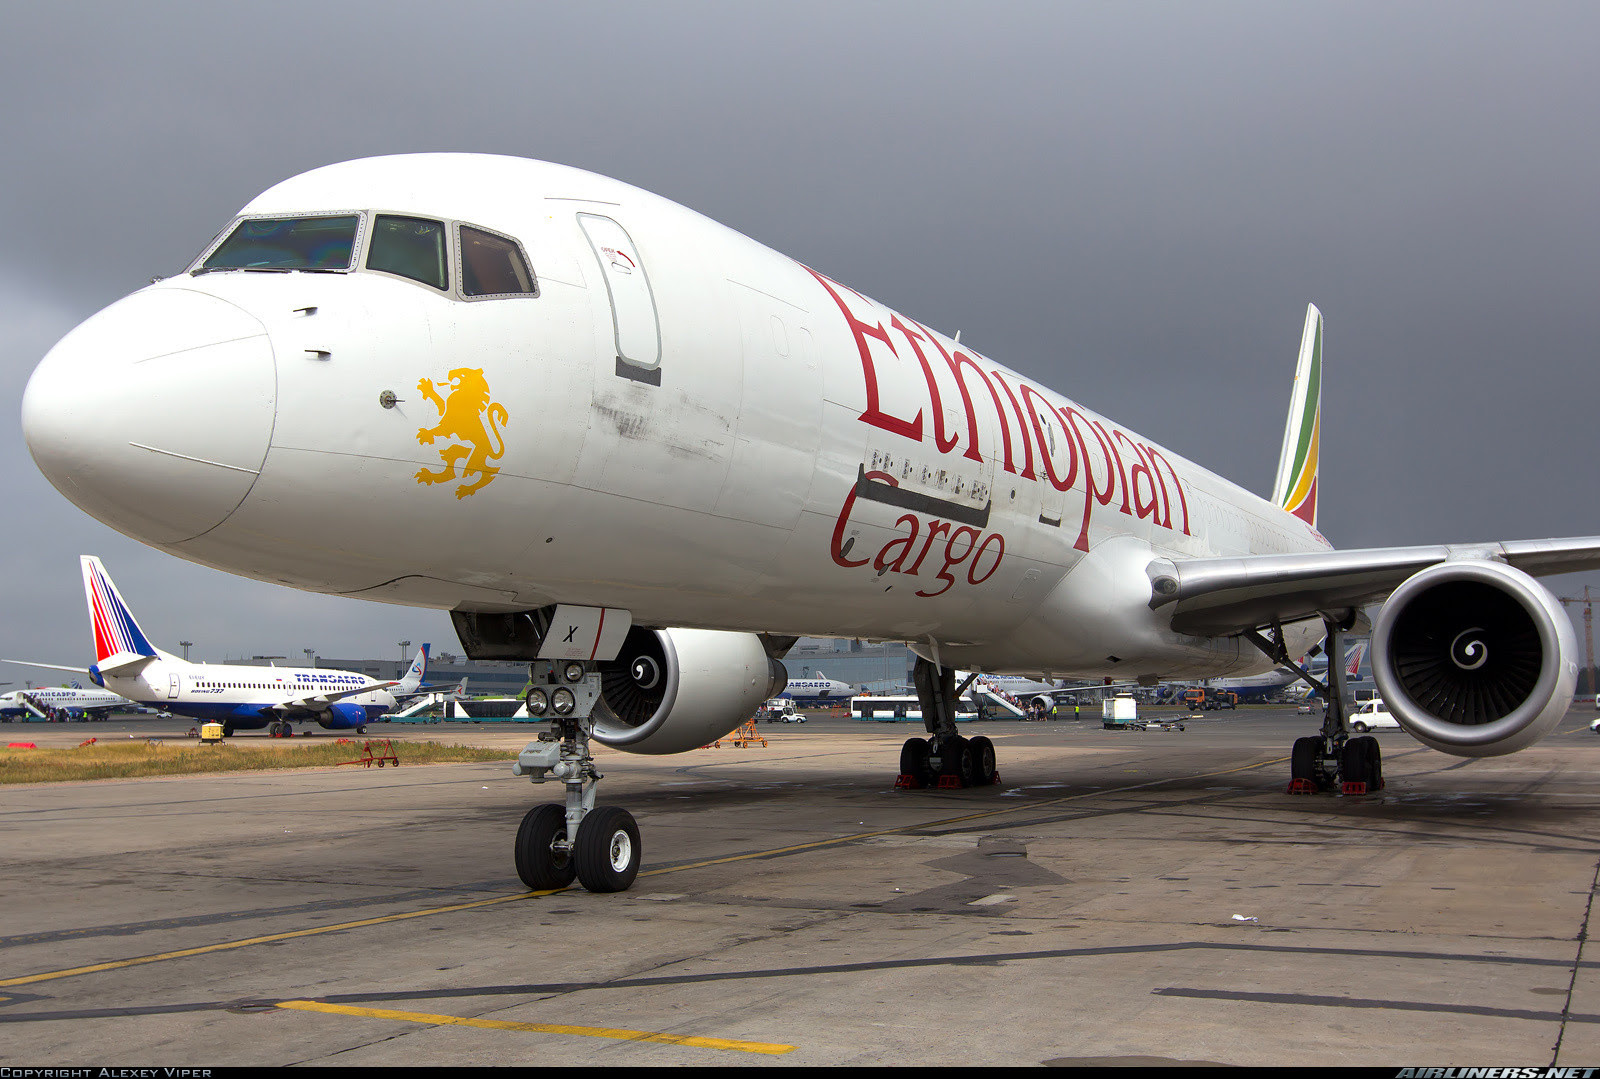 Ethiopian Airlines Cargo Boeing 757-200PCF in Moscow